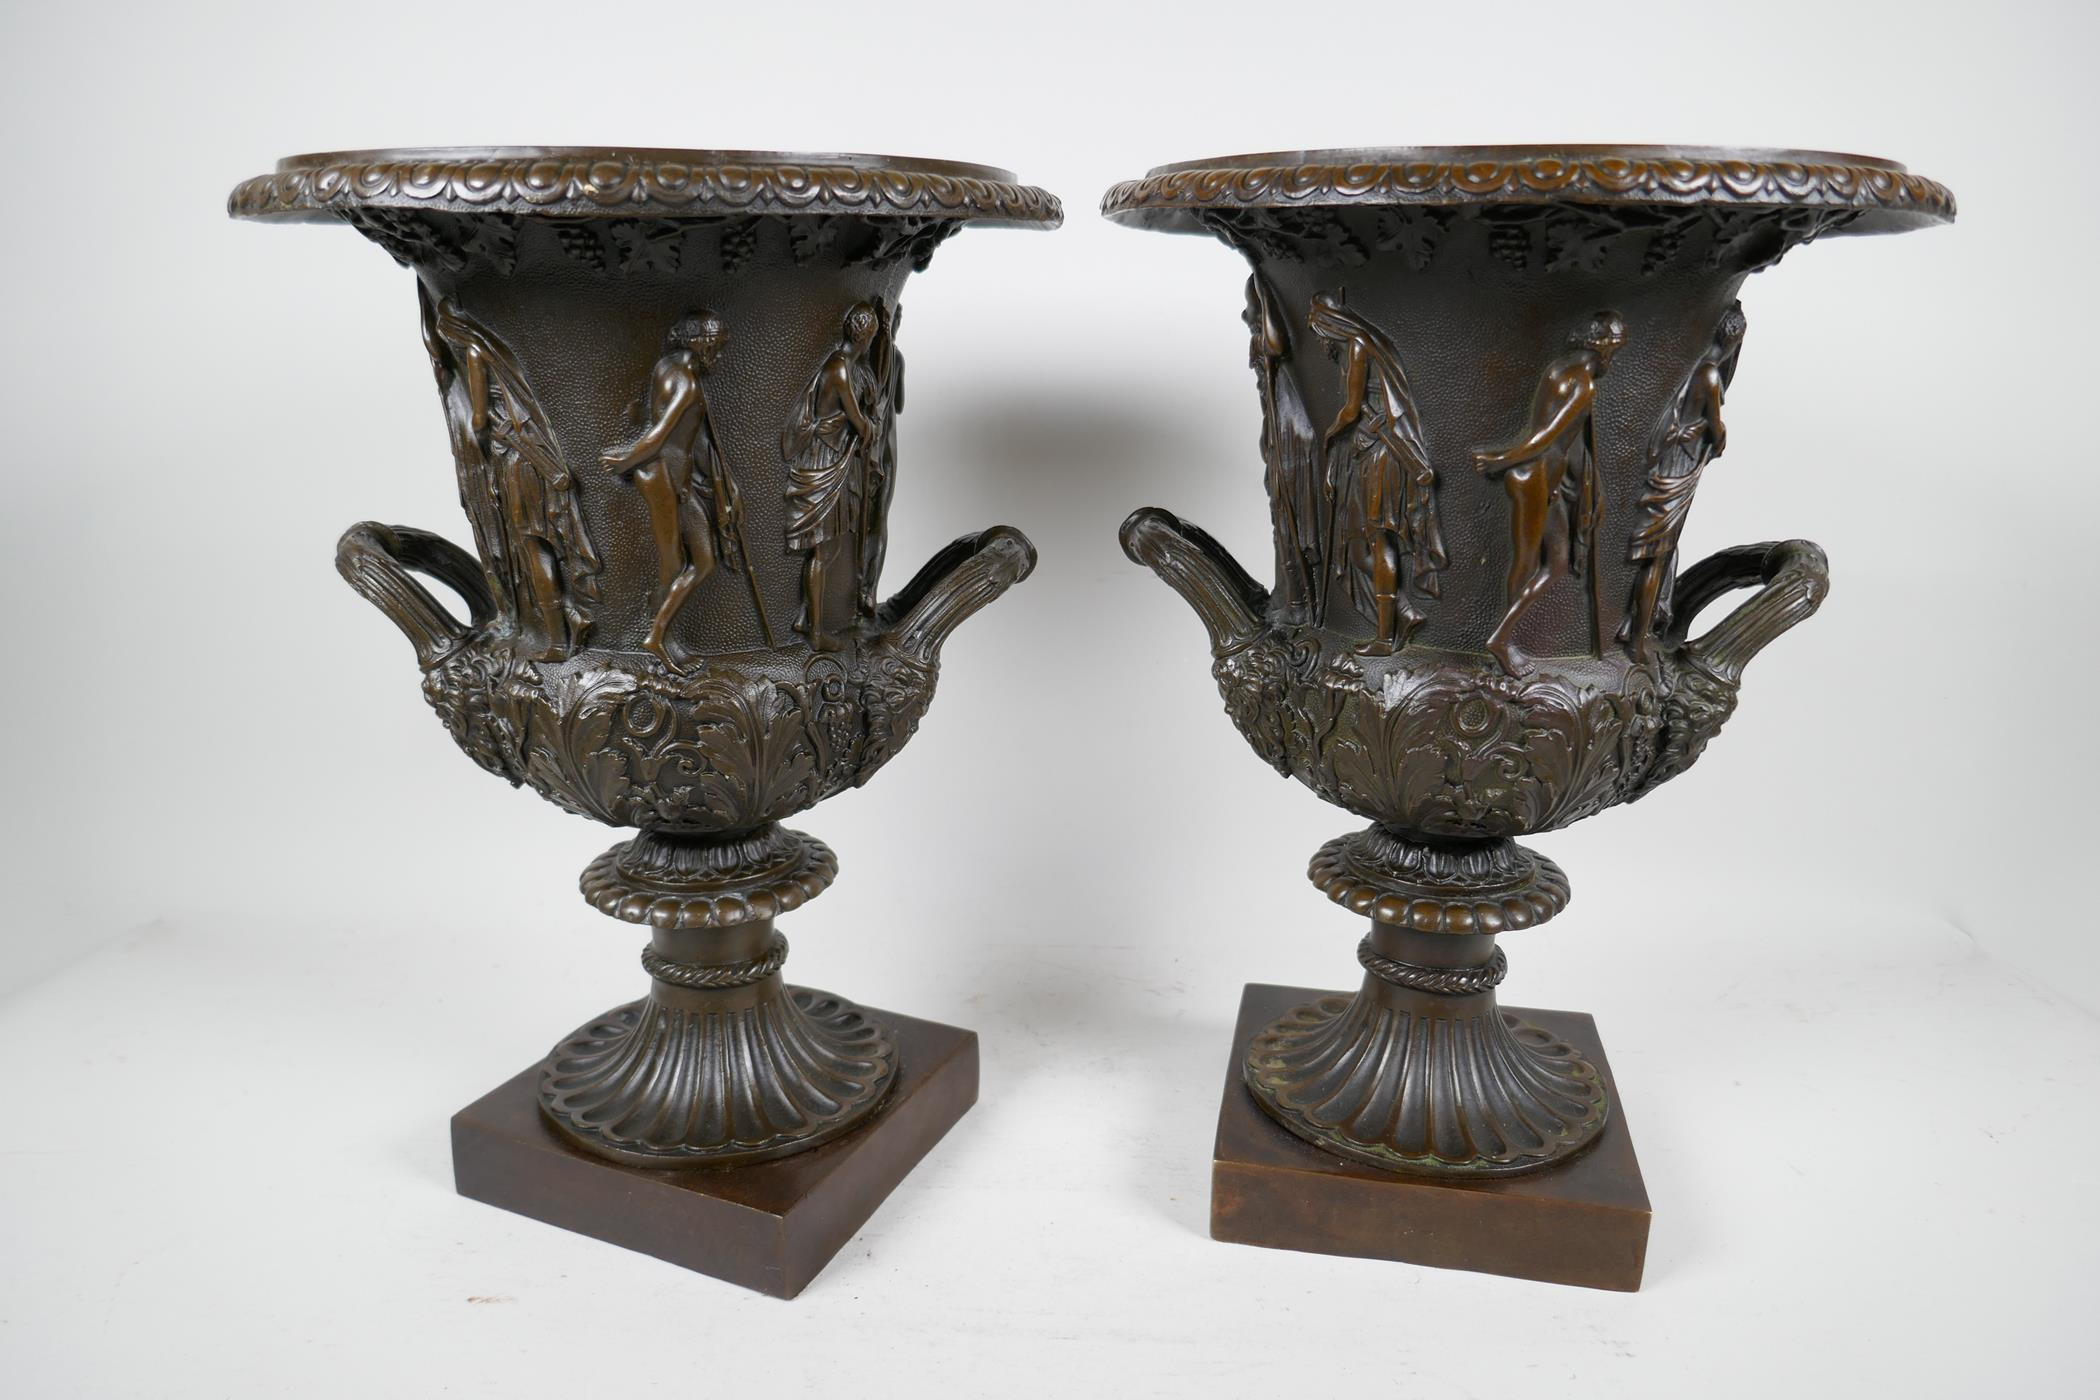 A pair of classical Grand Tour style bronze pedestal urns decorated with many figures on square